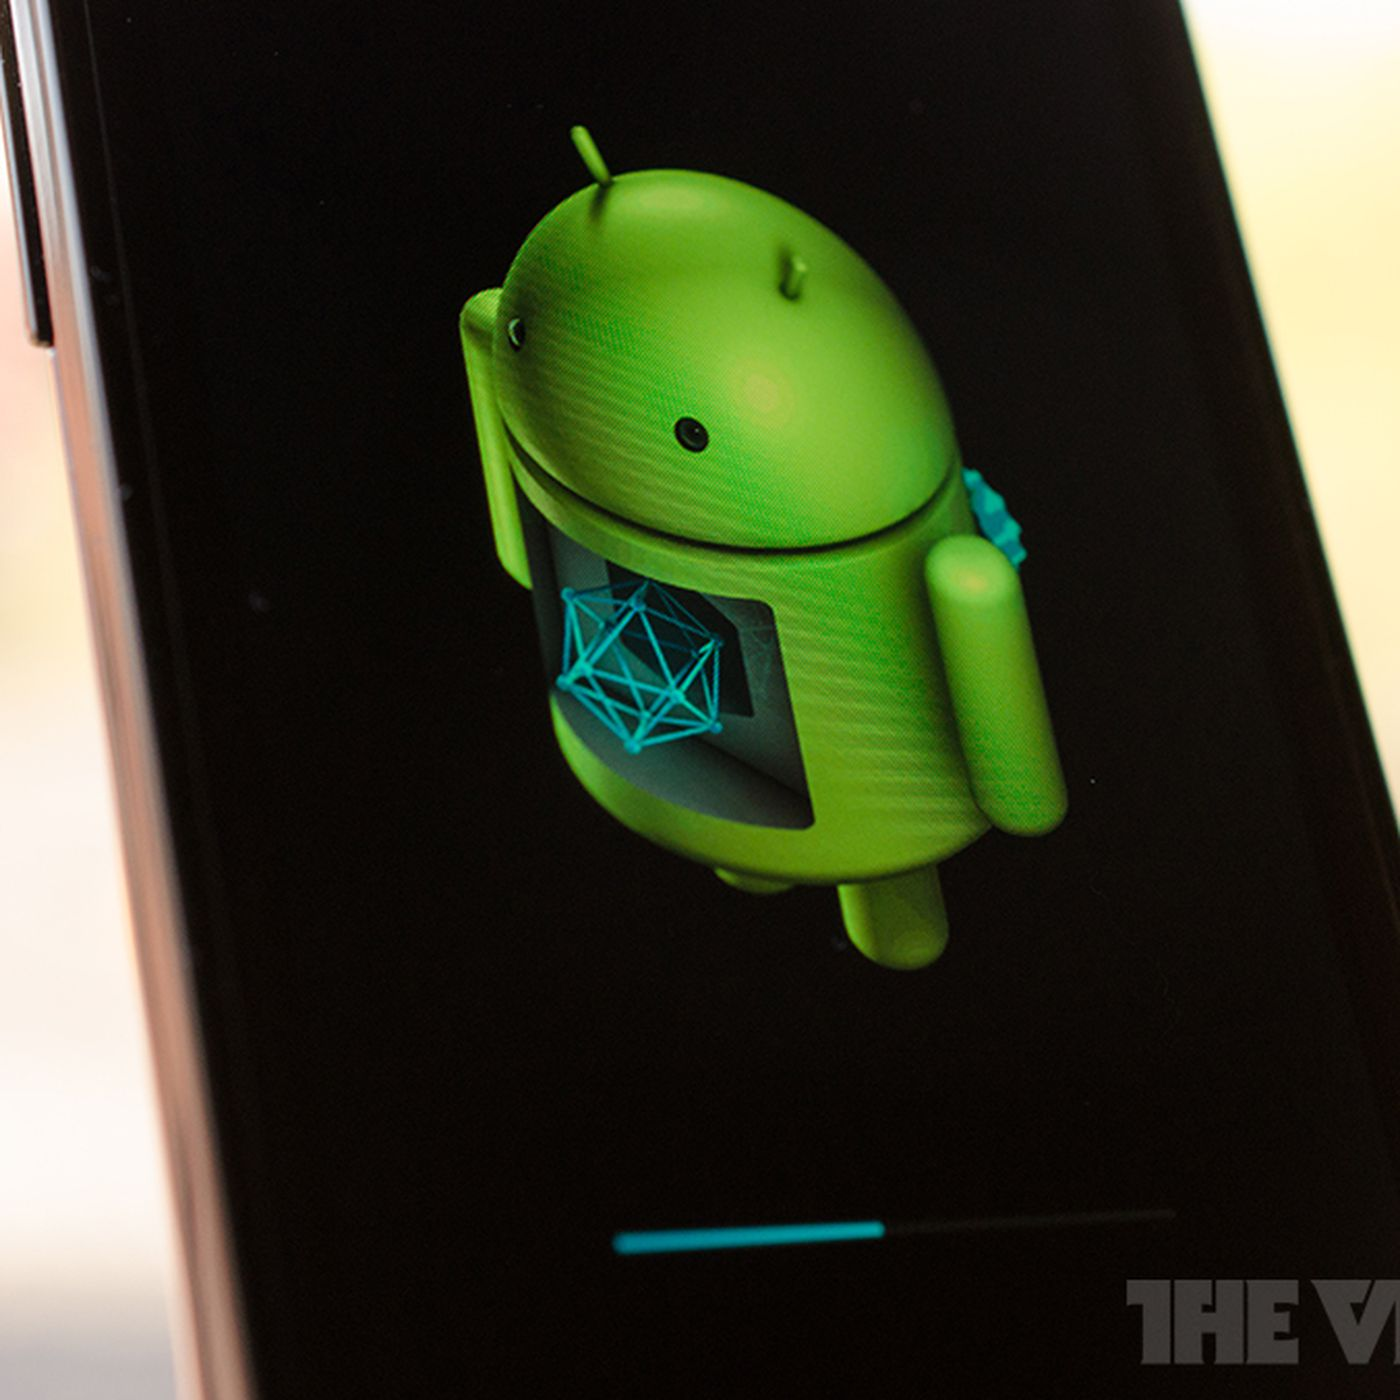 App-installing malware found in over 1 million Android